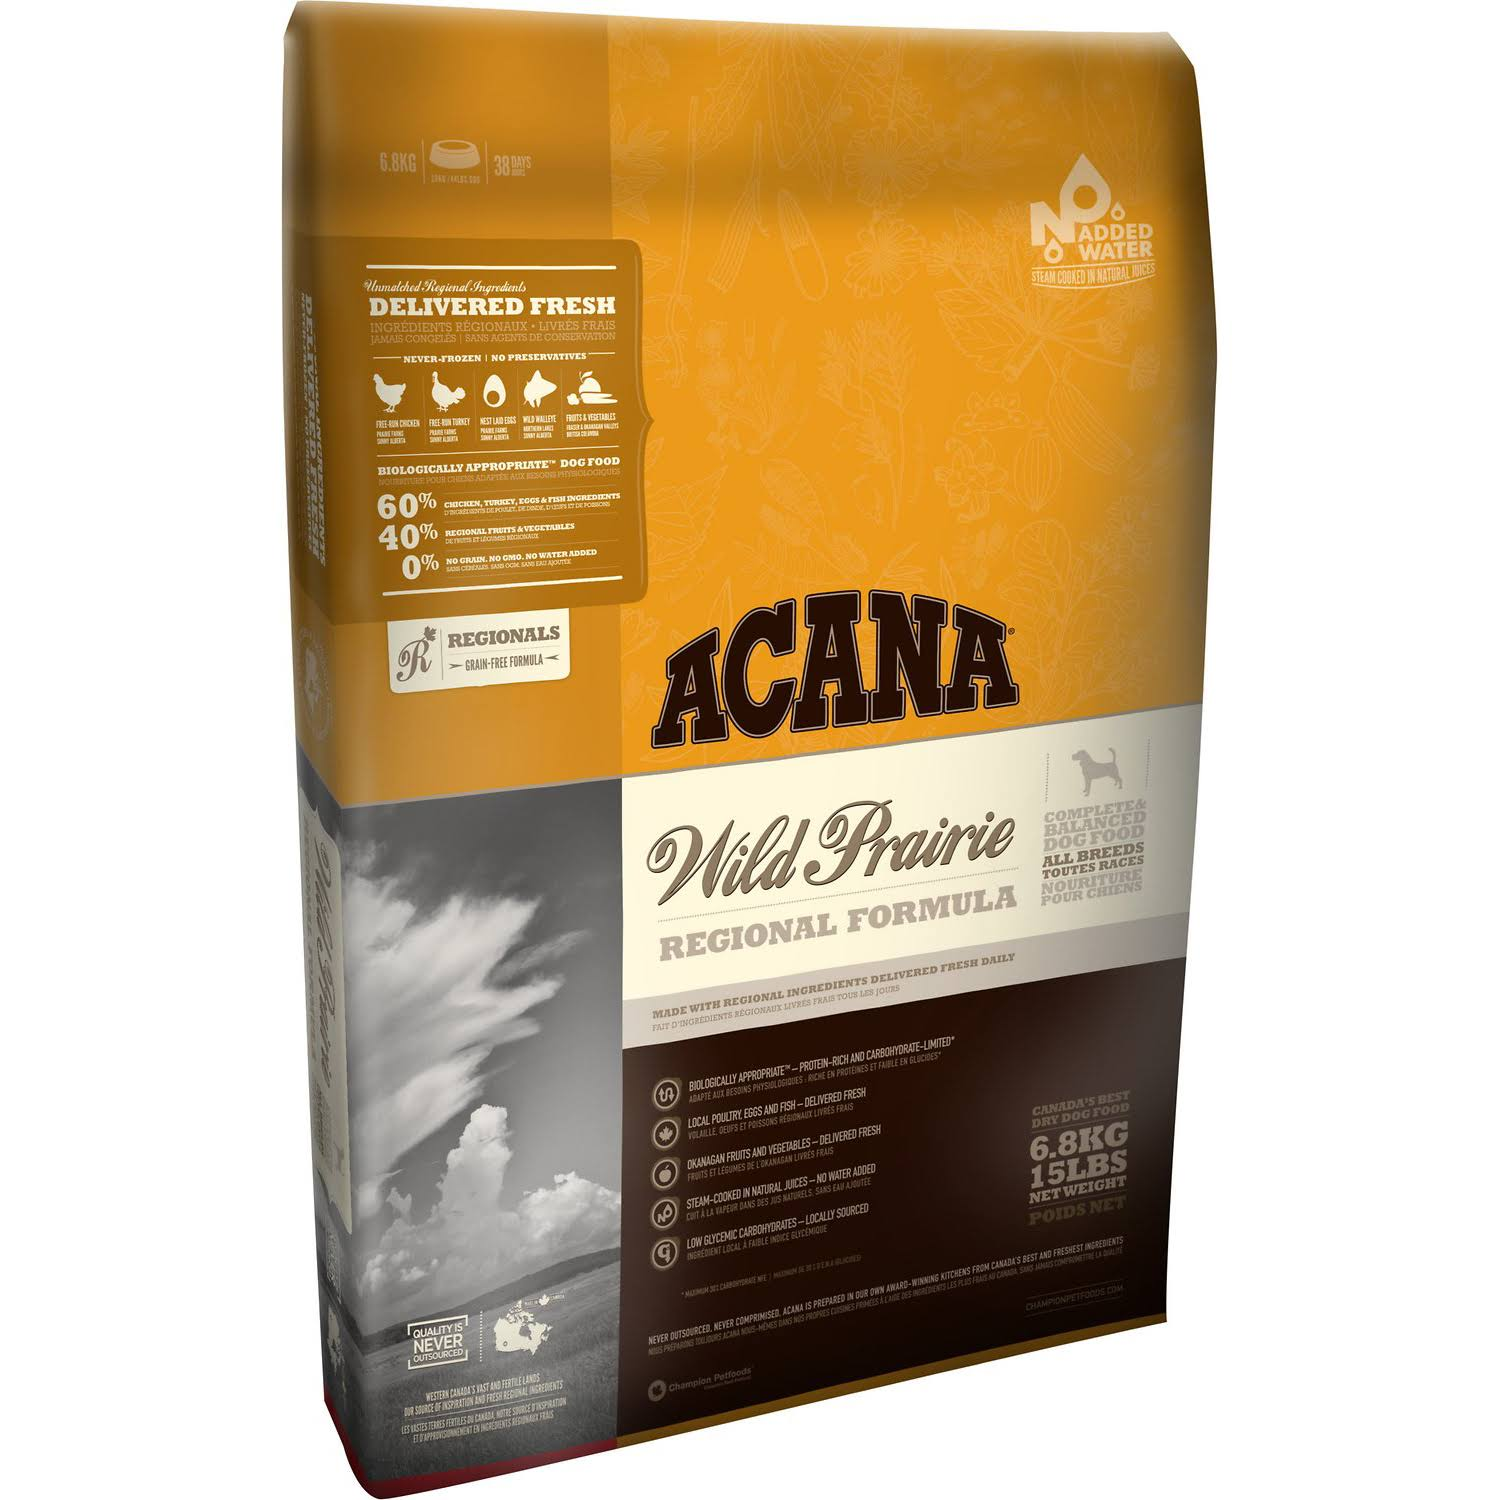 Taste Of The Wild Dog Food Reviews >> Acana Wild Prairie dog food 11.4Kg - Big Dog World